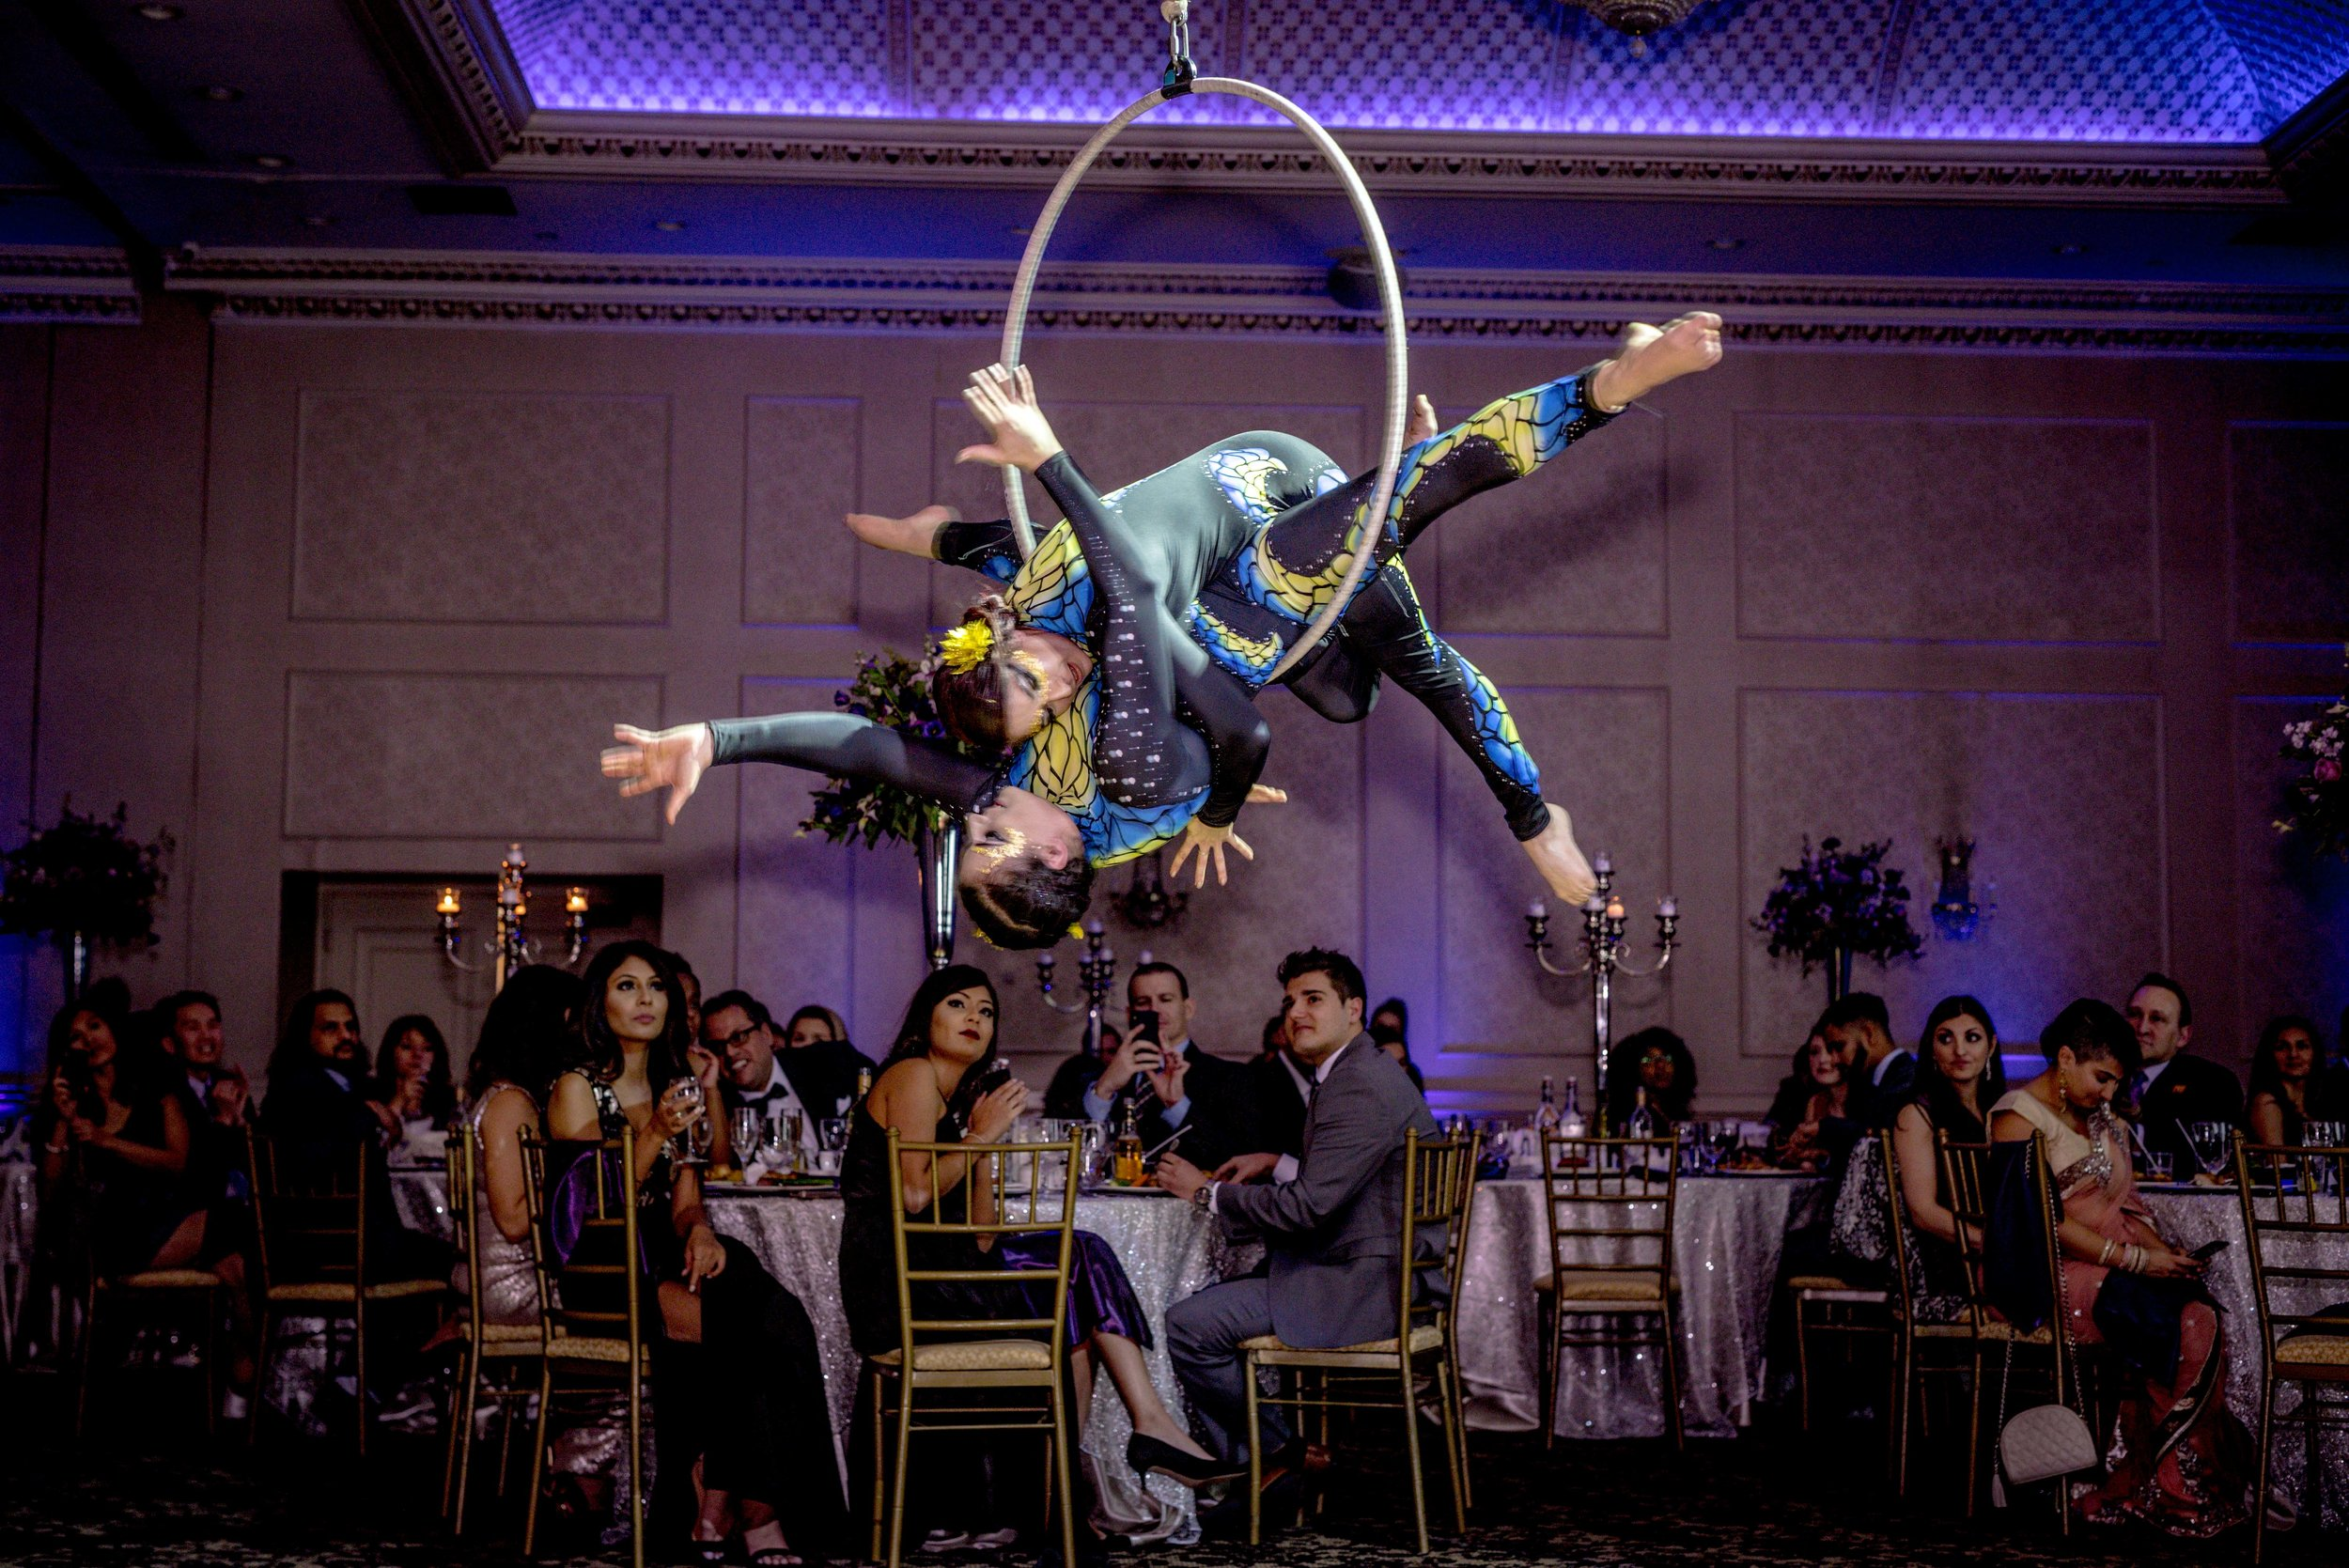 Pr and special event photography of circus performers